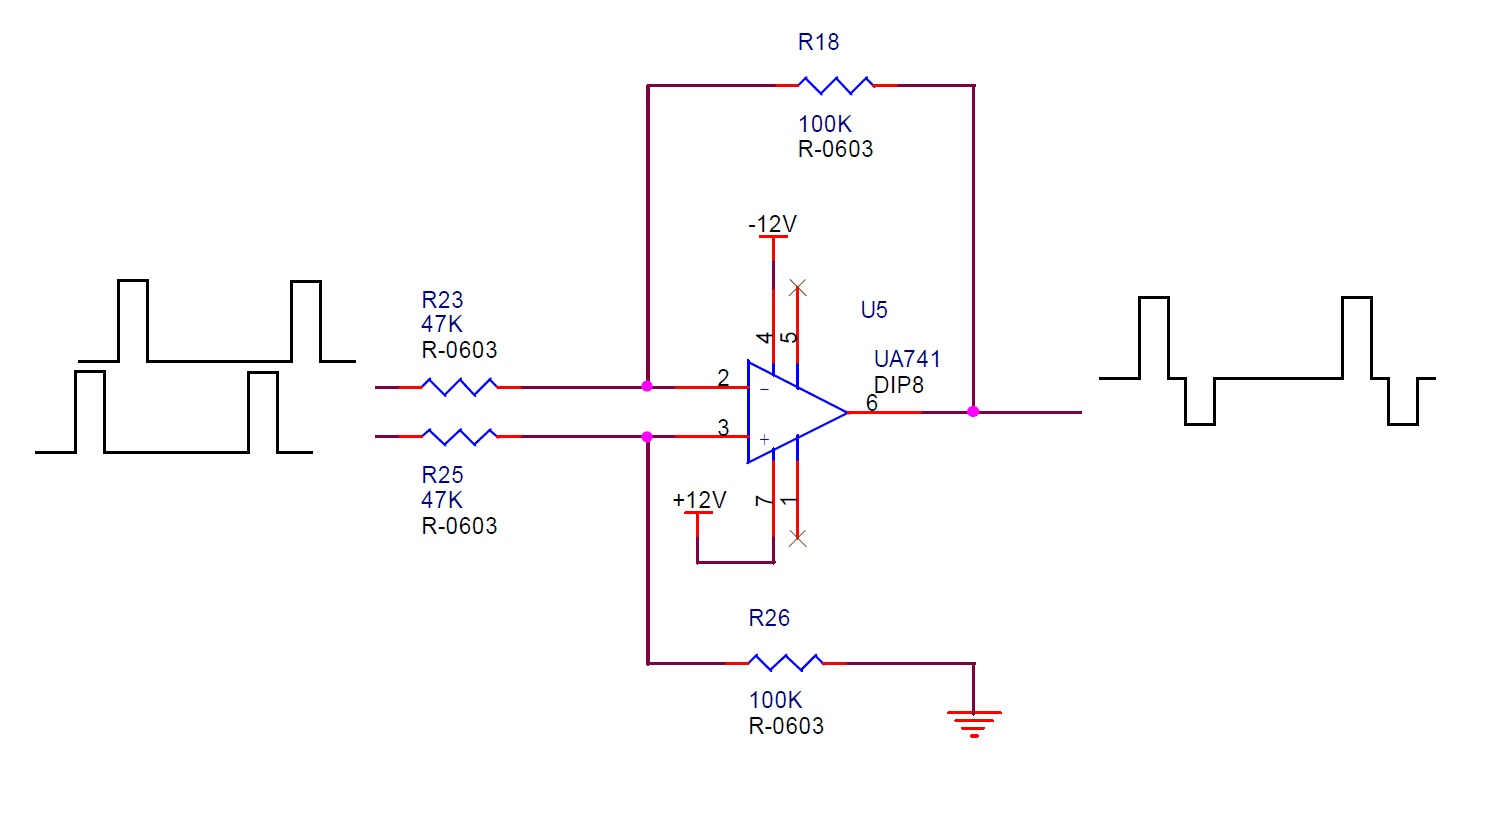 hight resolution of q3 when connect to load 50k resistor to ground the output pin 12v and 1v pulse wave is correct